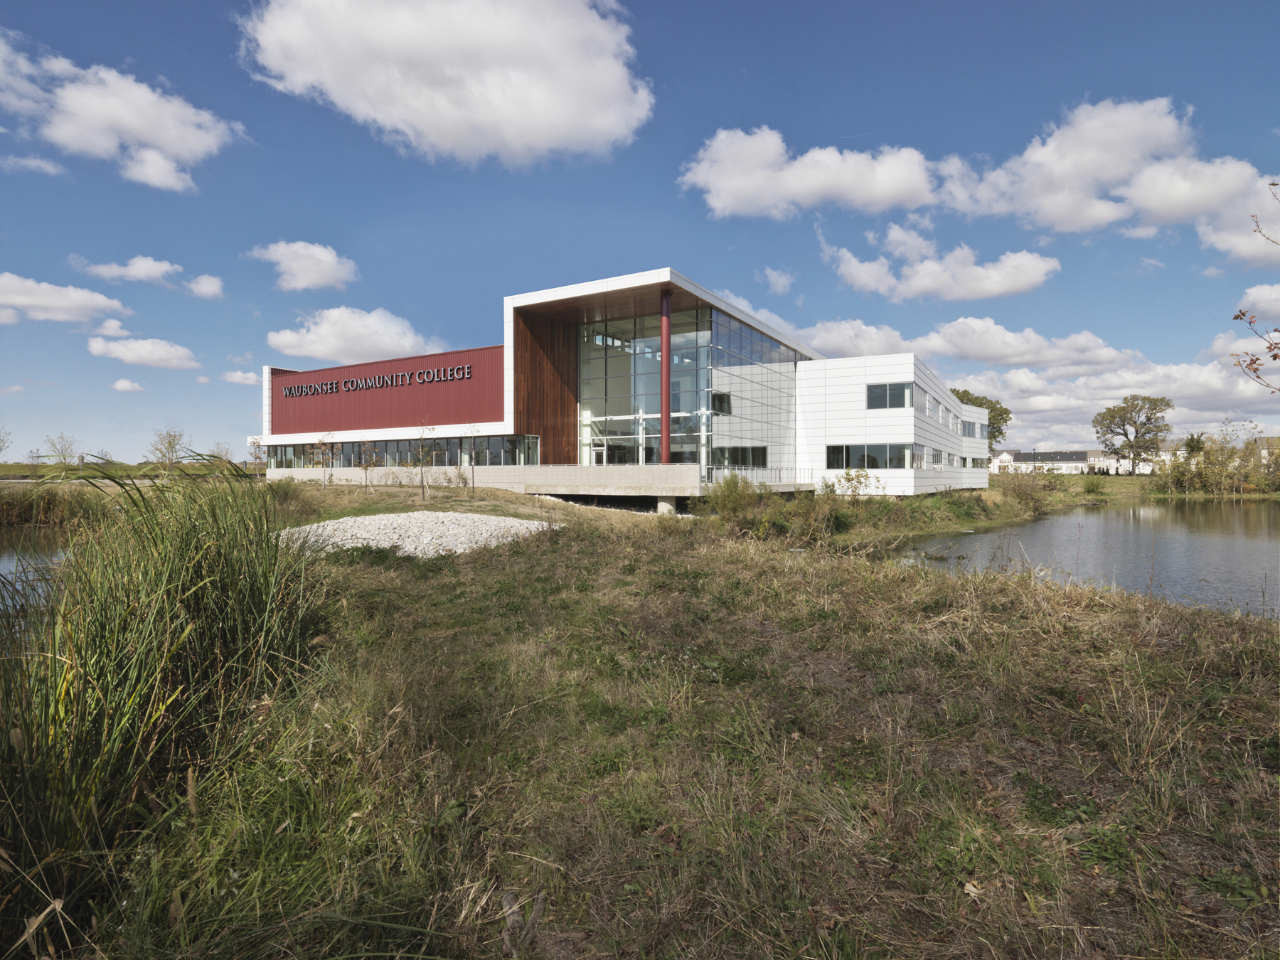 Waubonsee Community College Plano Classroom Building / Holabird & Root, © Jim Steinkamp Photography